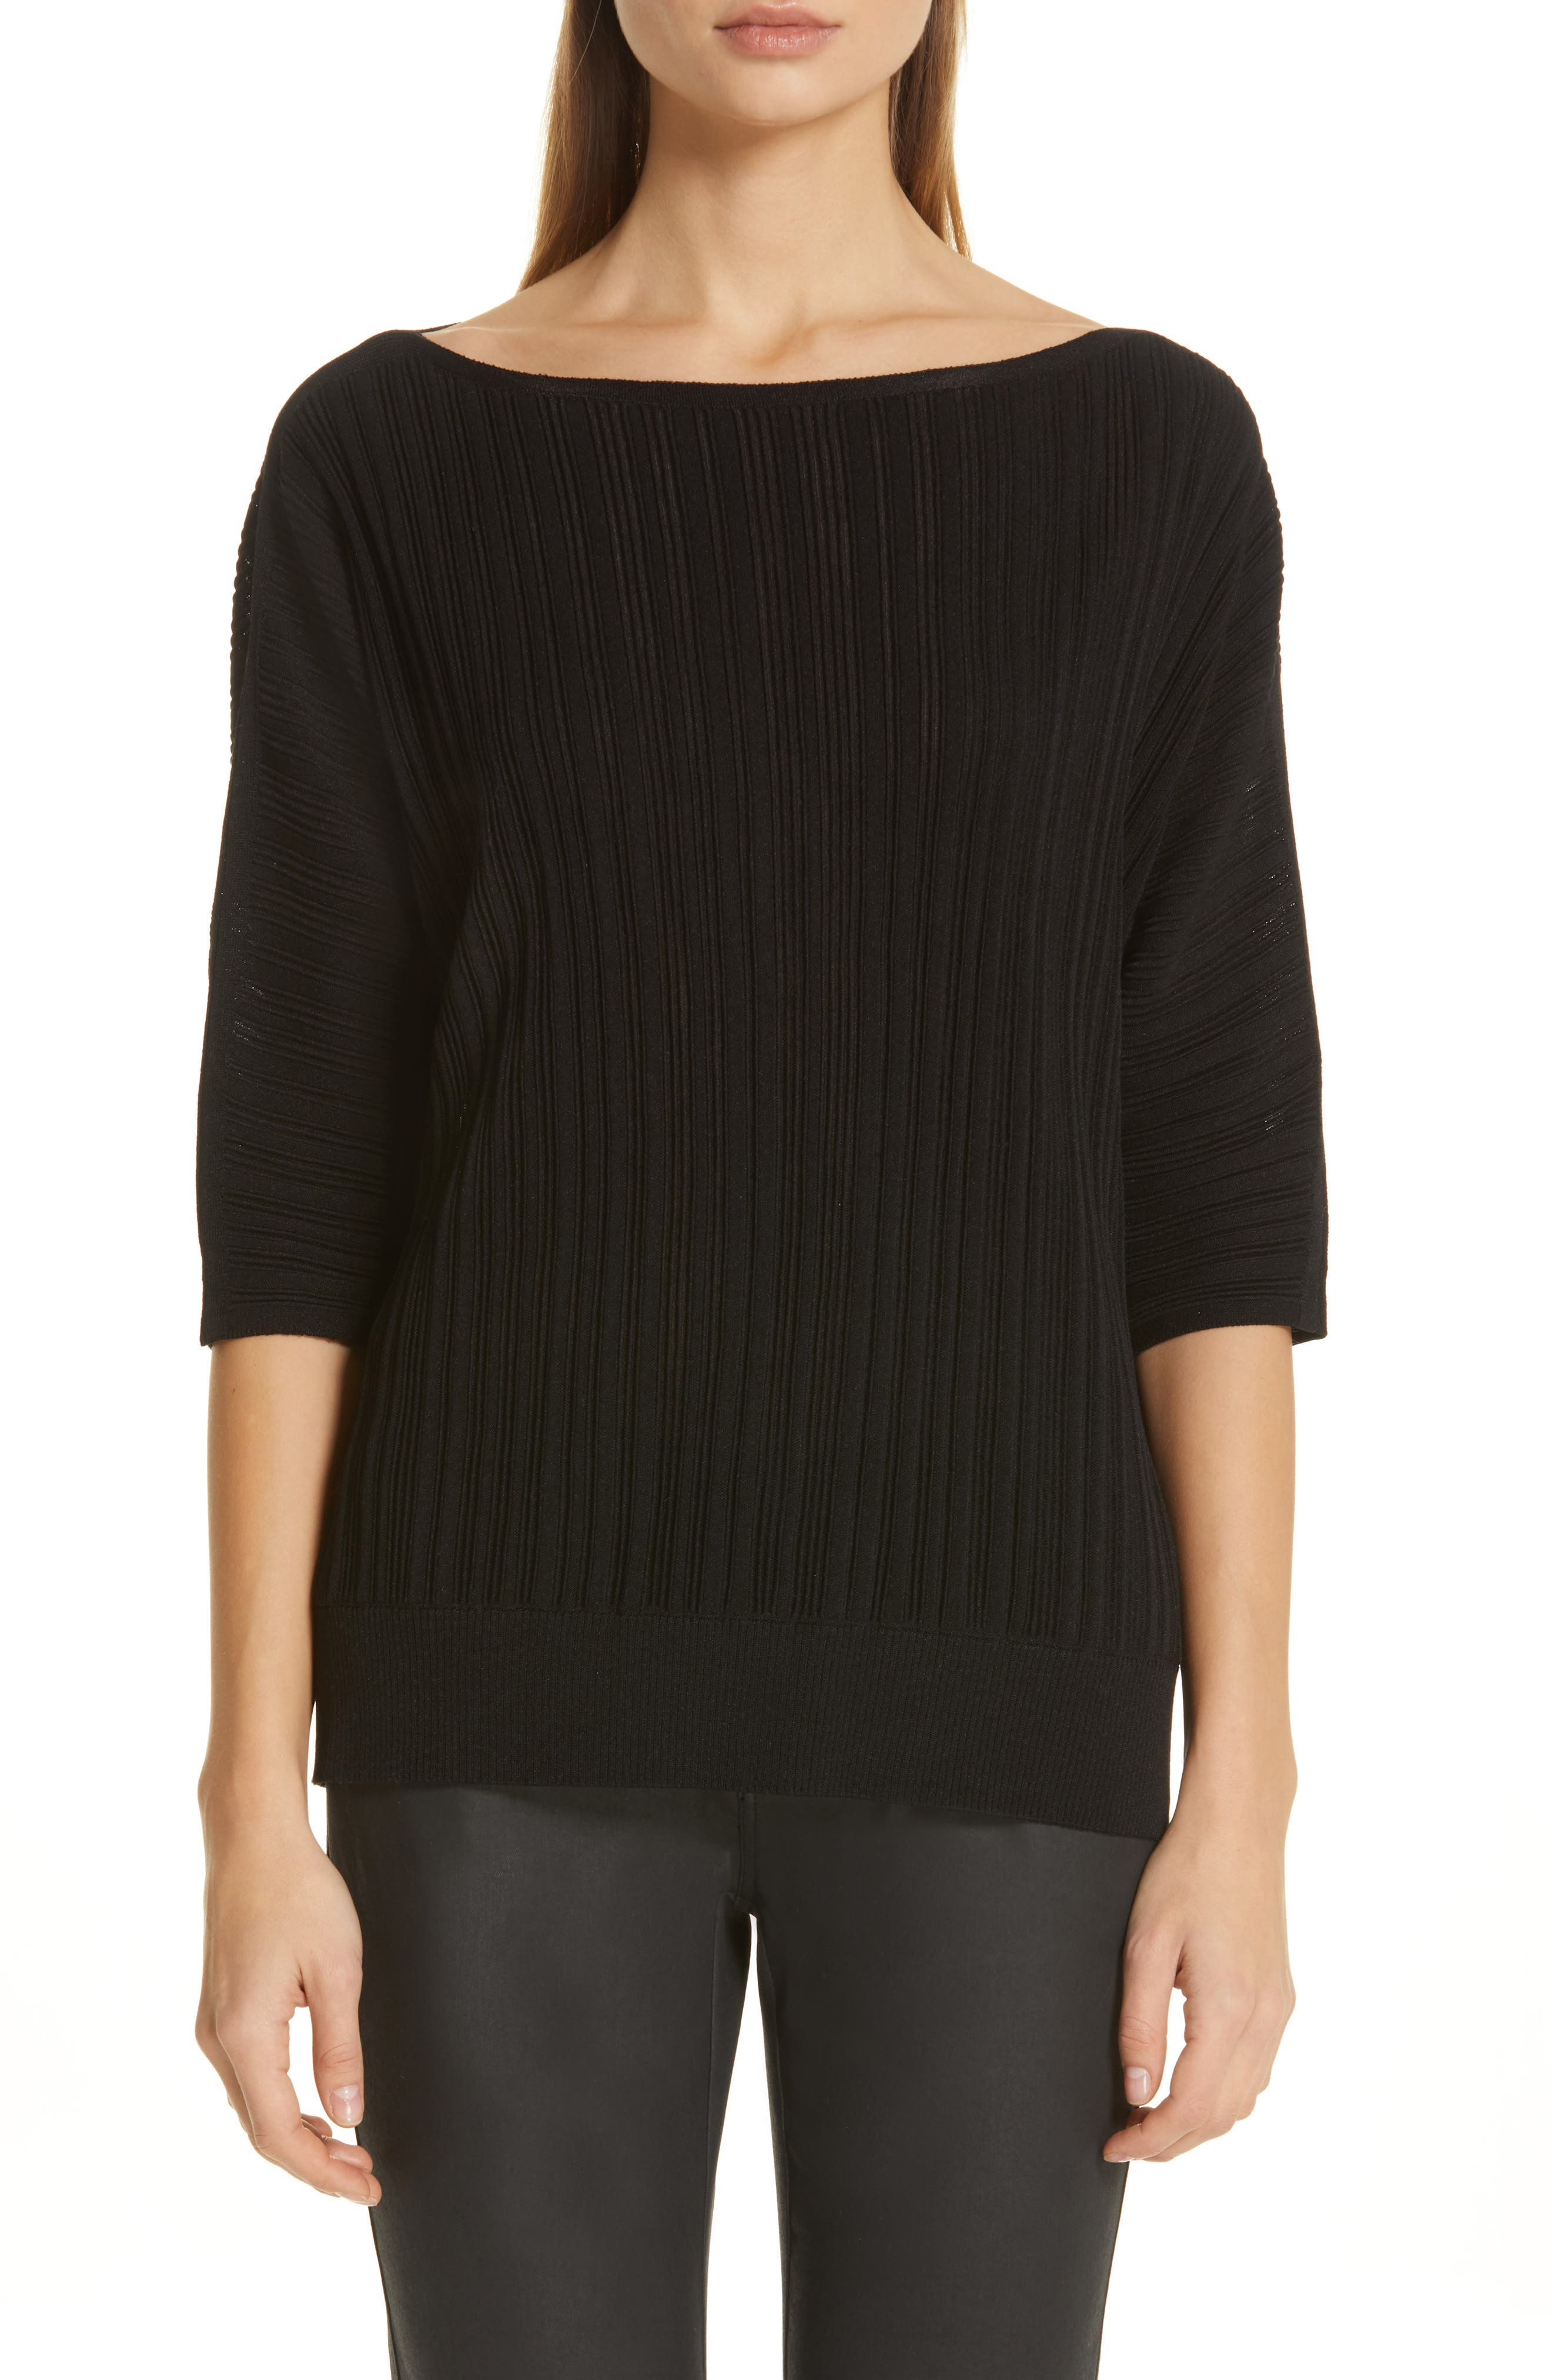 LAFAYETTE 148 NEW YORK, Plissé Ribbed Dolman Sweater, Main thumbnail 1, color, BLACK